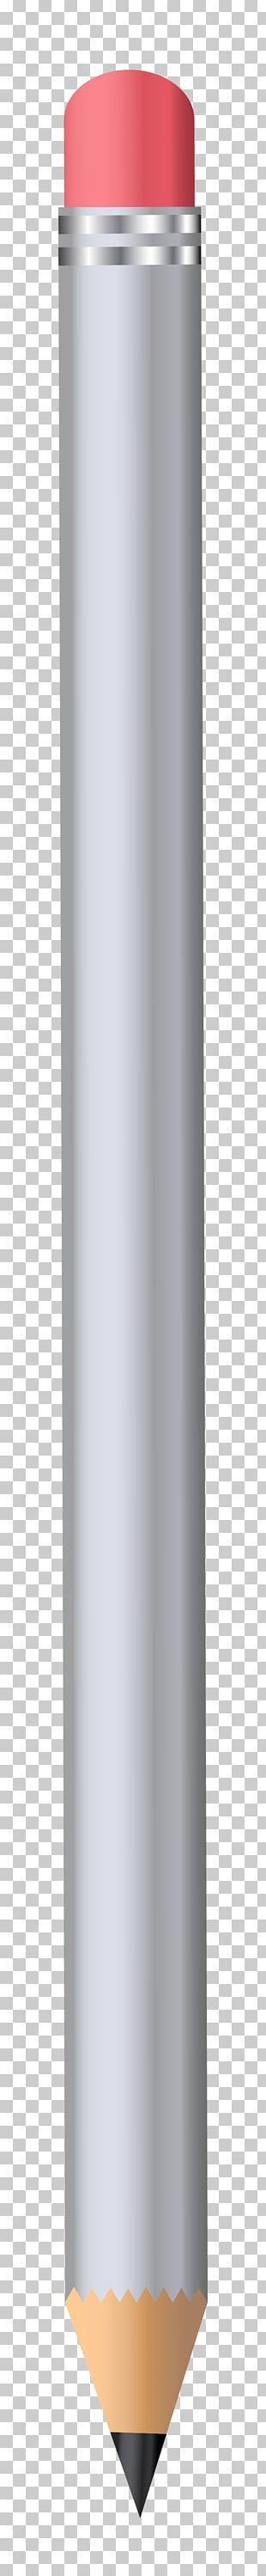 Cylinder Design Product PNG